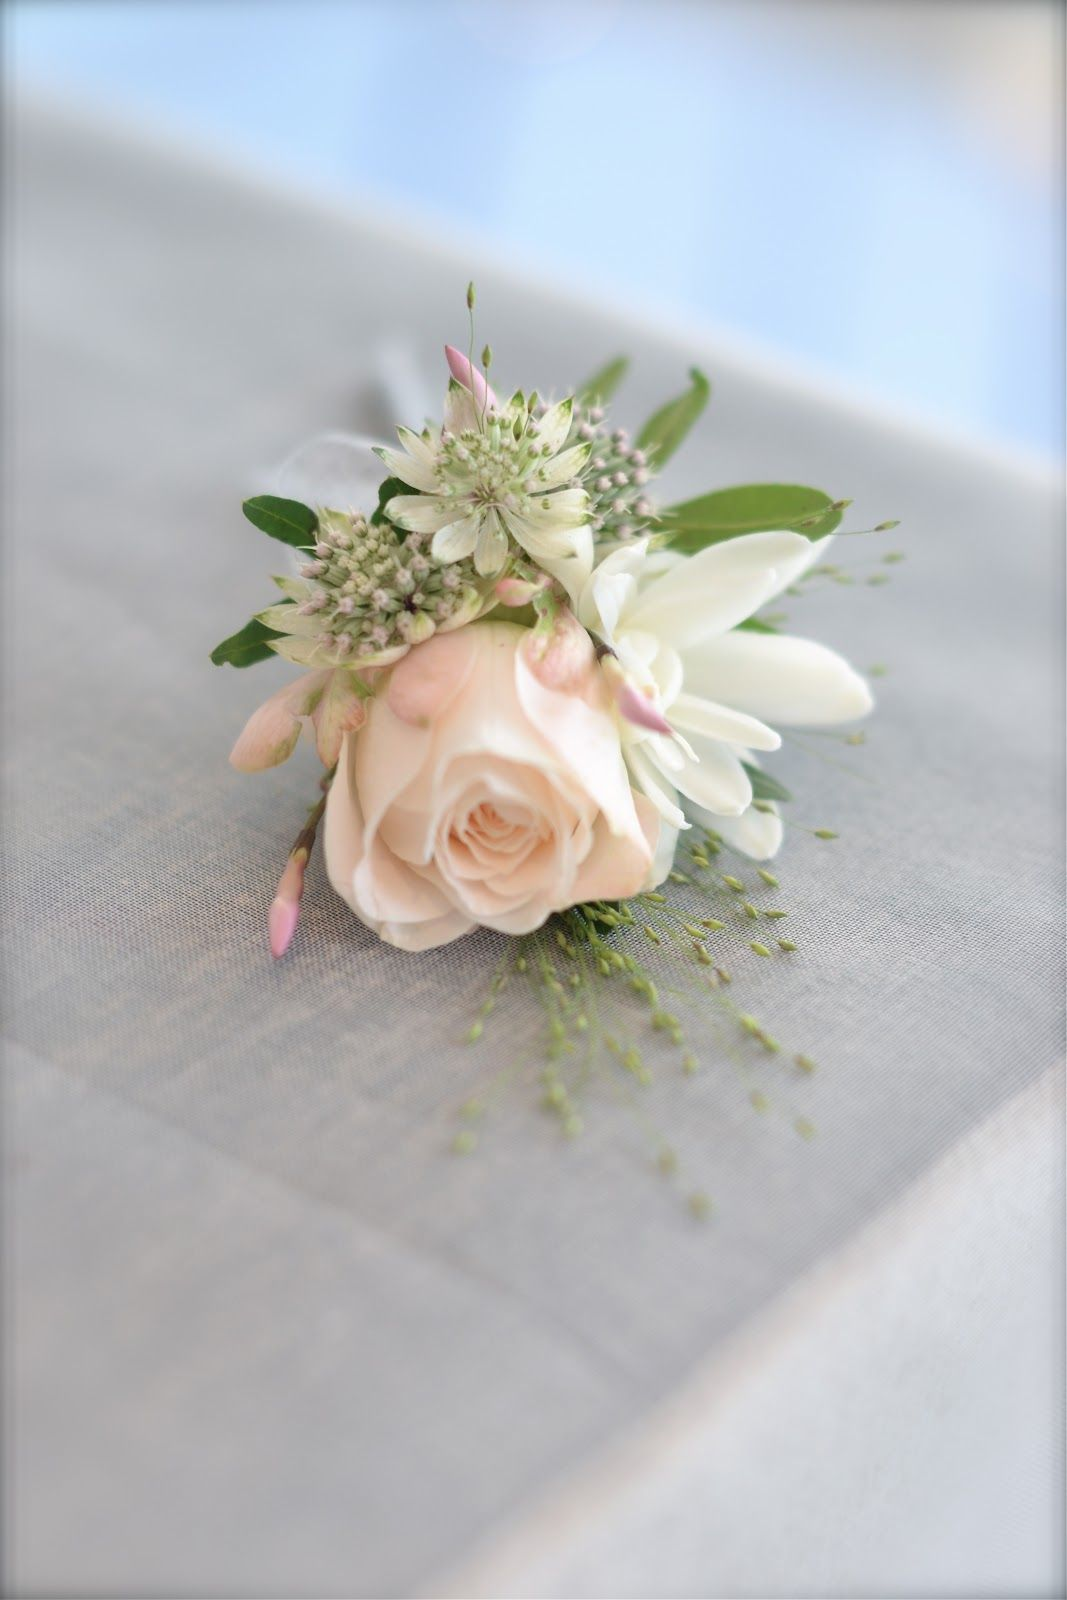 Groom Buttonhole Idea Rose With Complimenting Flowers And Foliage Not Focusing On Colour But Size And Shap Blush Wedding Flowers Wedding Flowers Prom Flowers